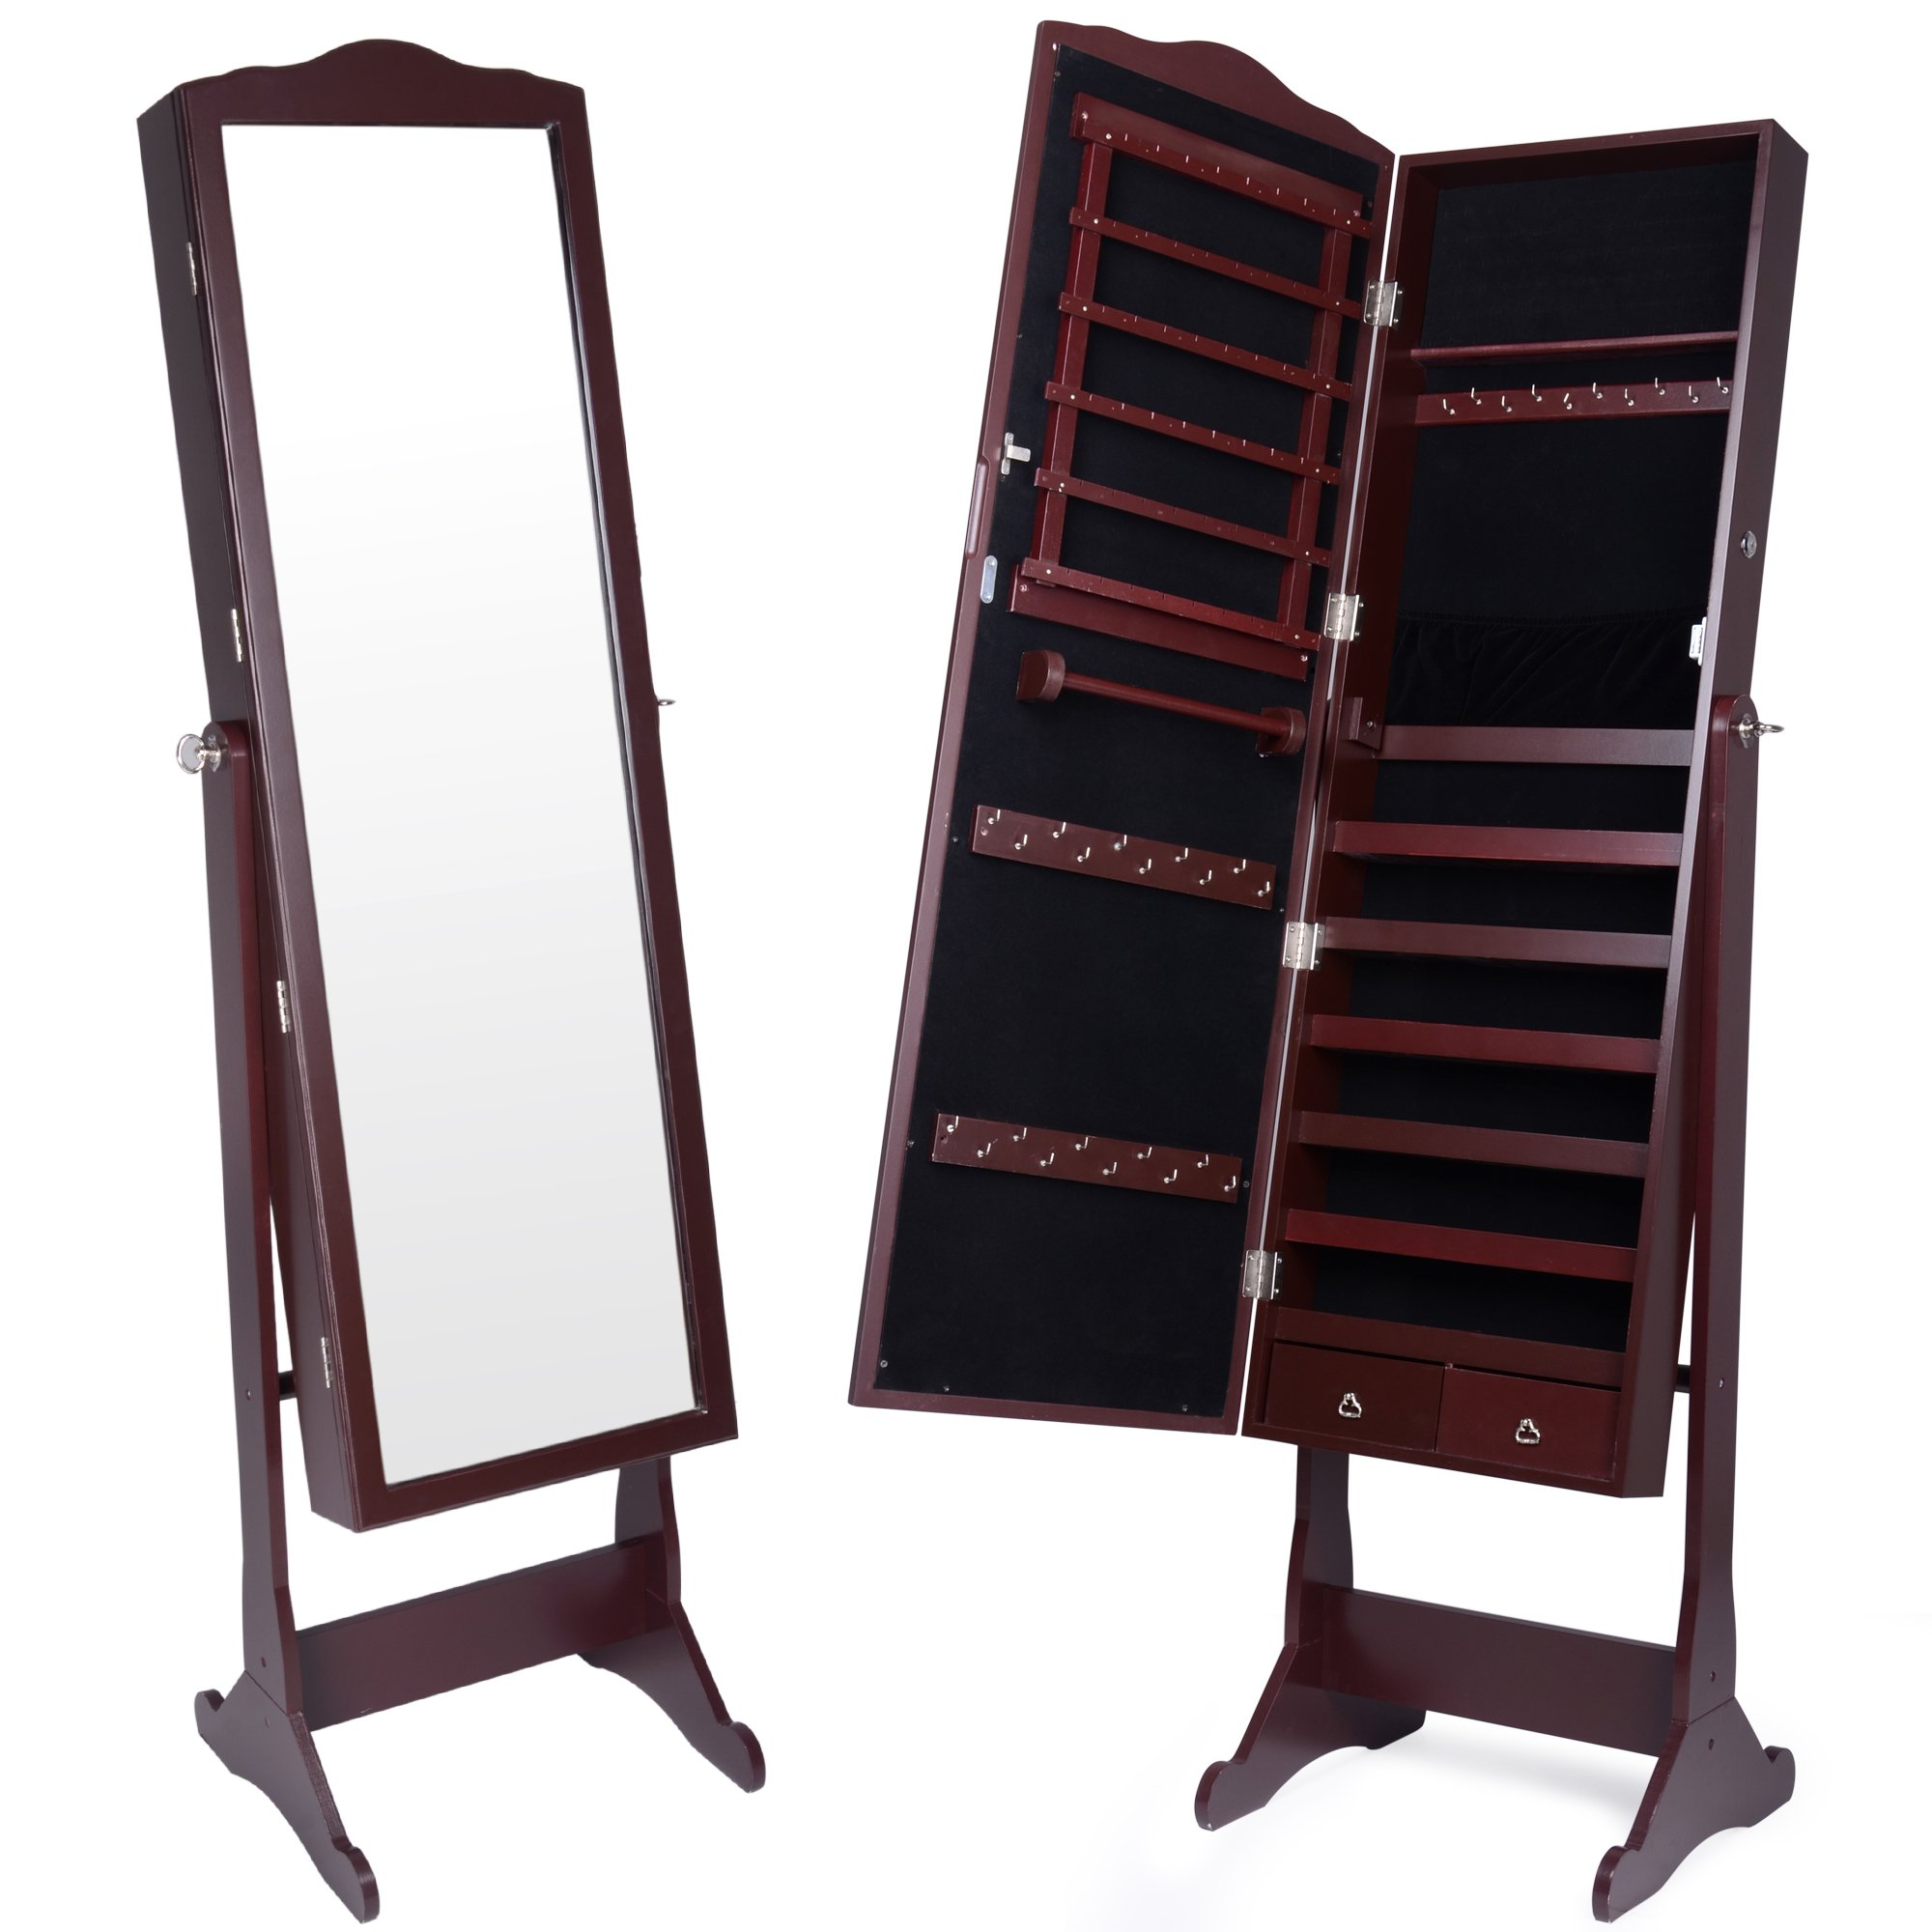 Kendal Standing Lockable Jewelry Cabinet with Cheval Mirror, Dark Brown JCT003